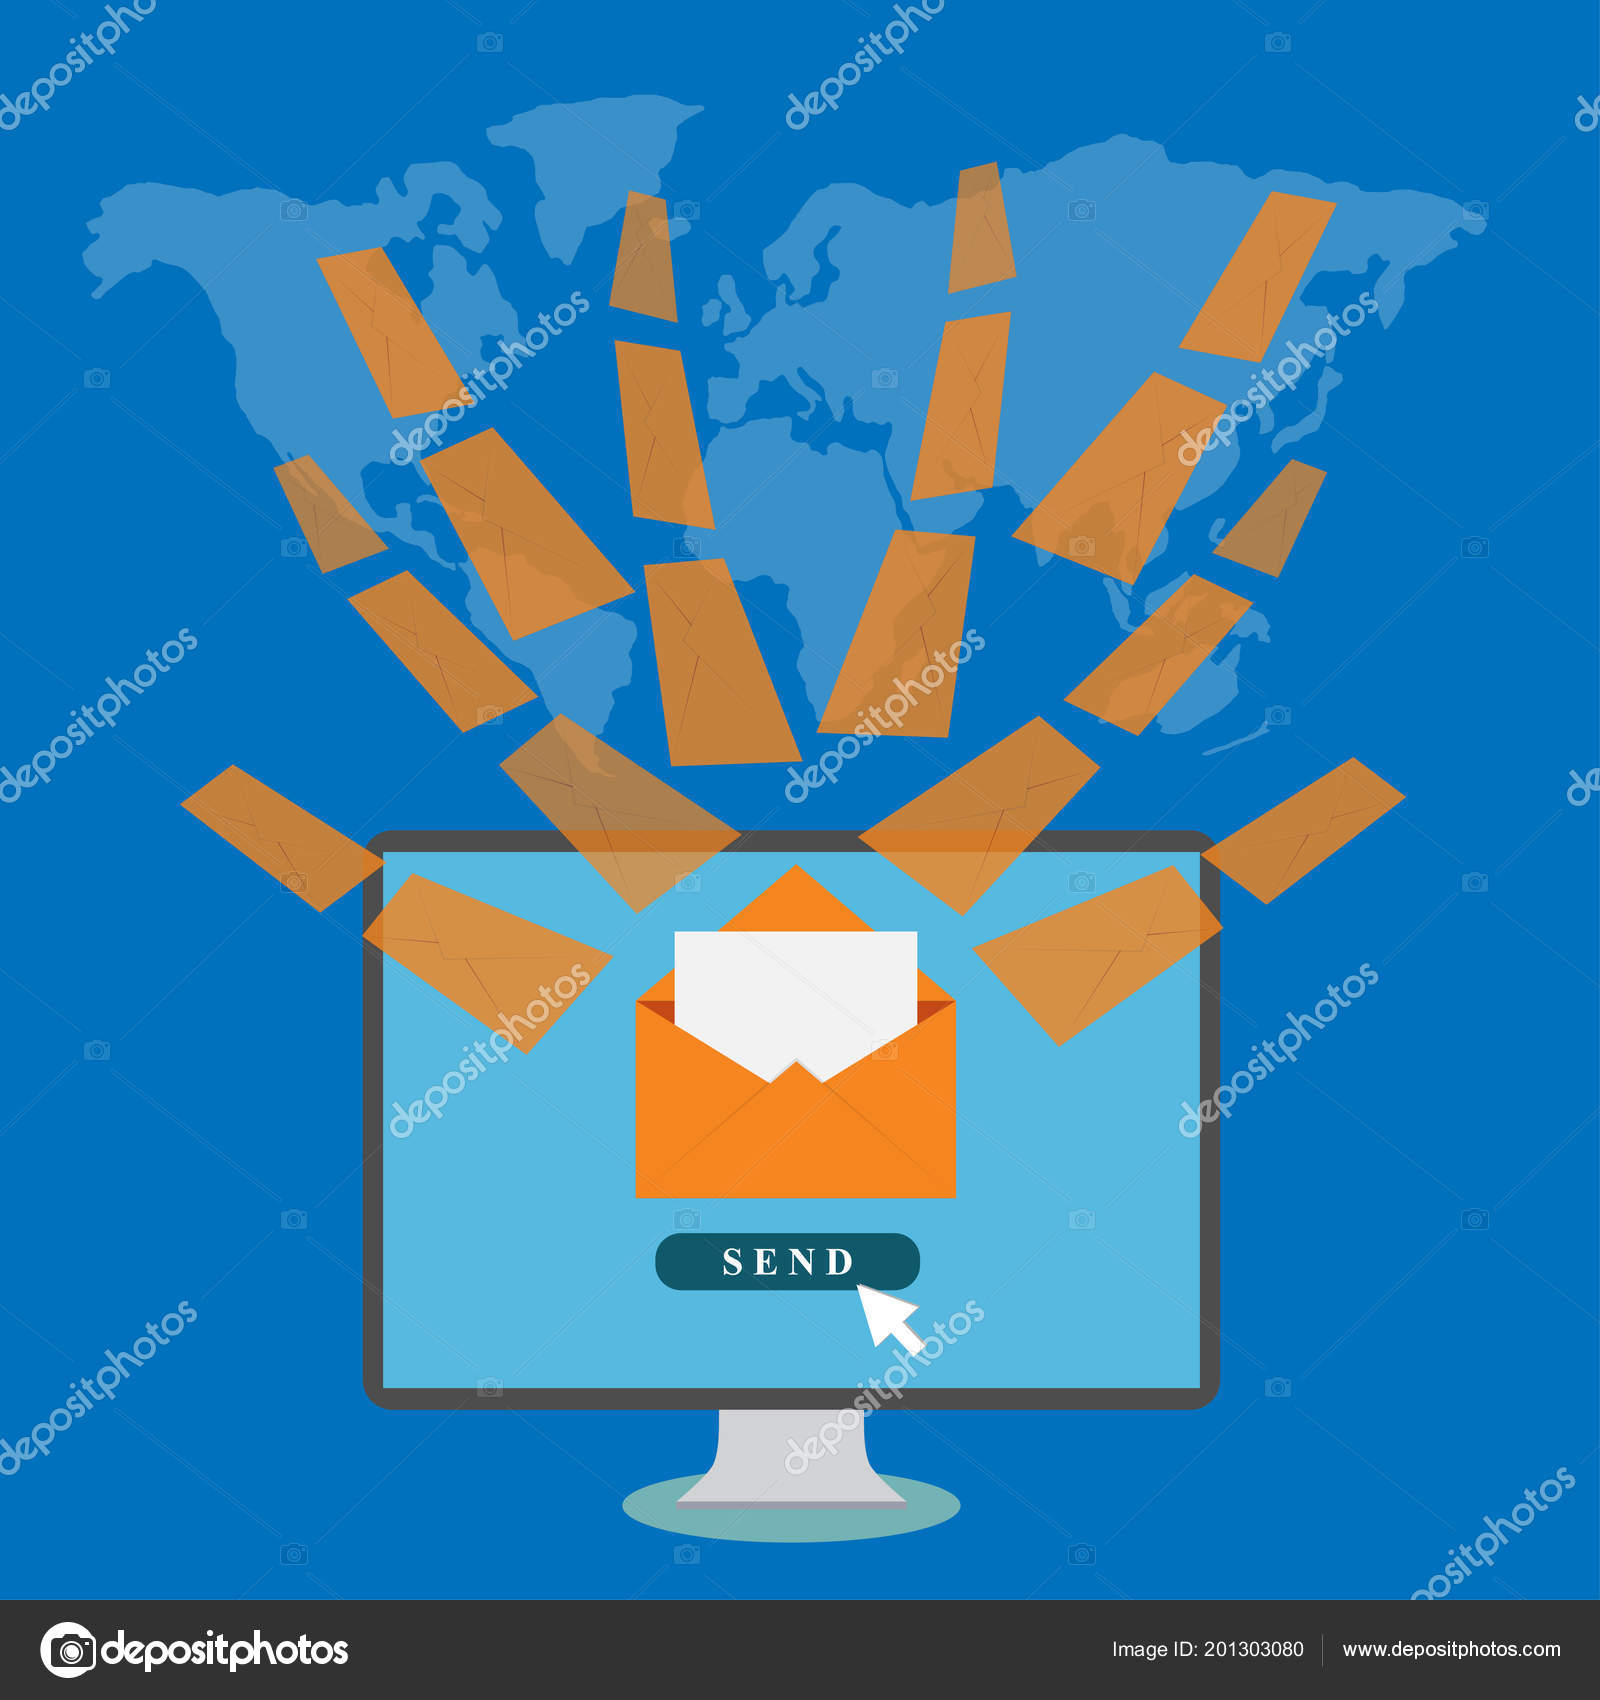 Desktop Envelopes World Map Background Email Concept — Stock Vector on